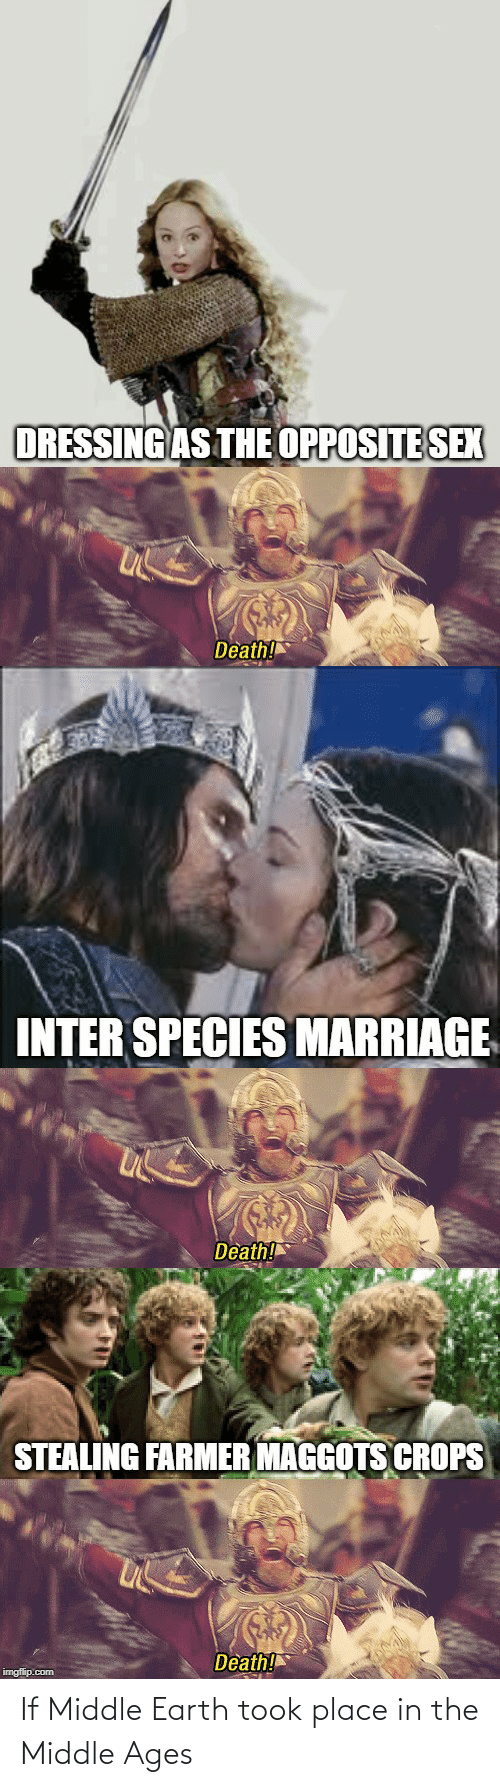 middle ages: If Middle Earth took place in the Middle Ages